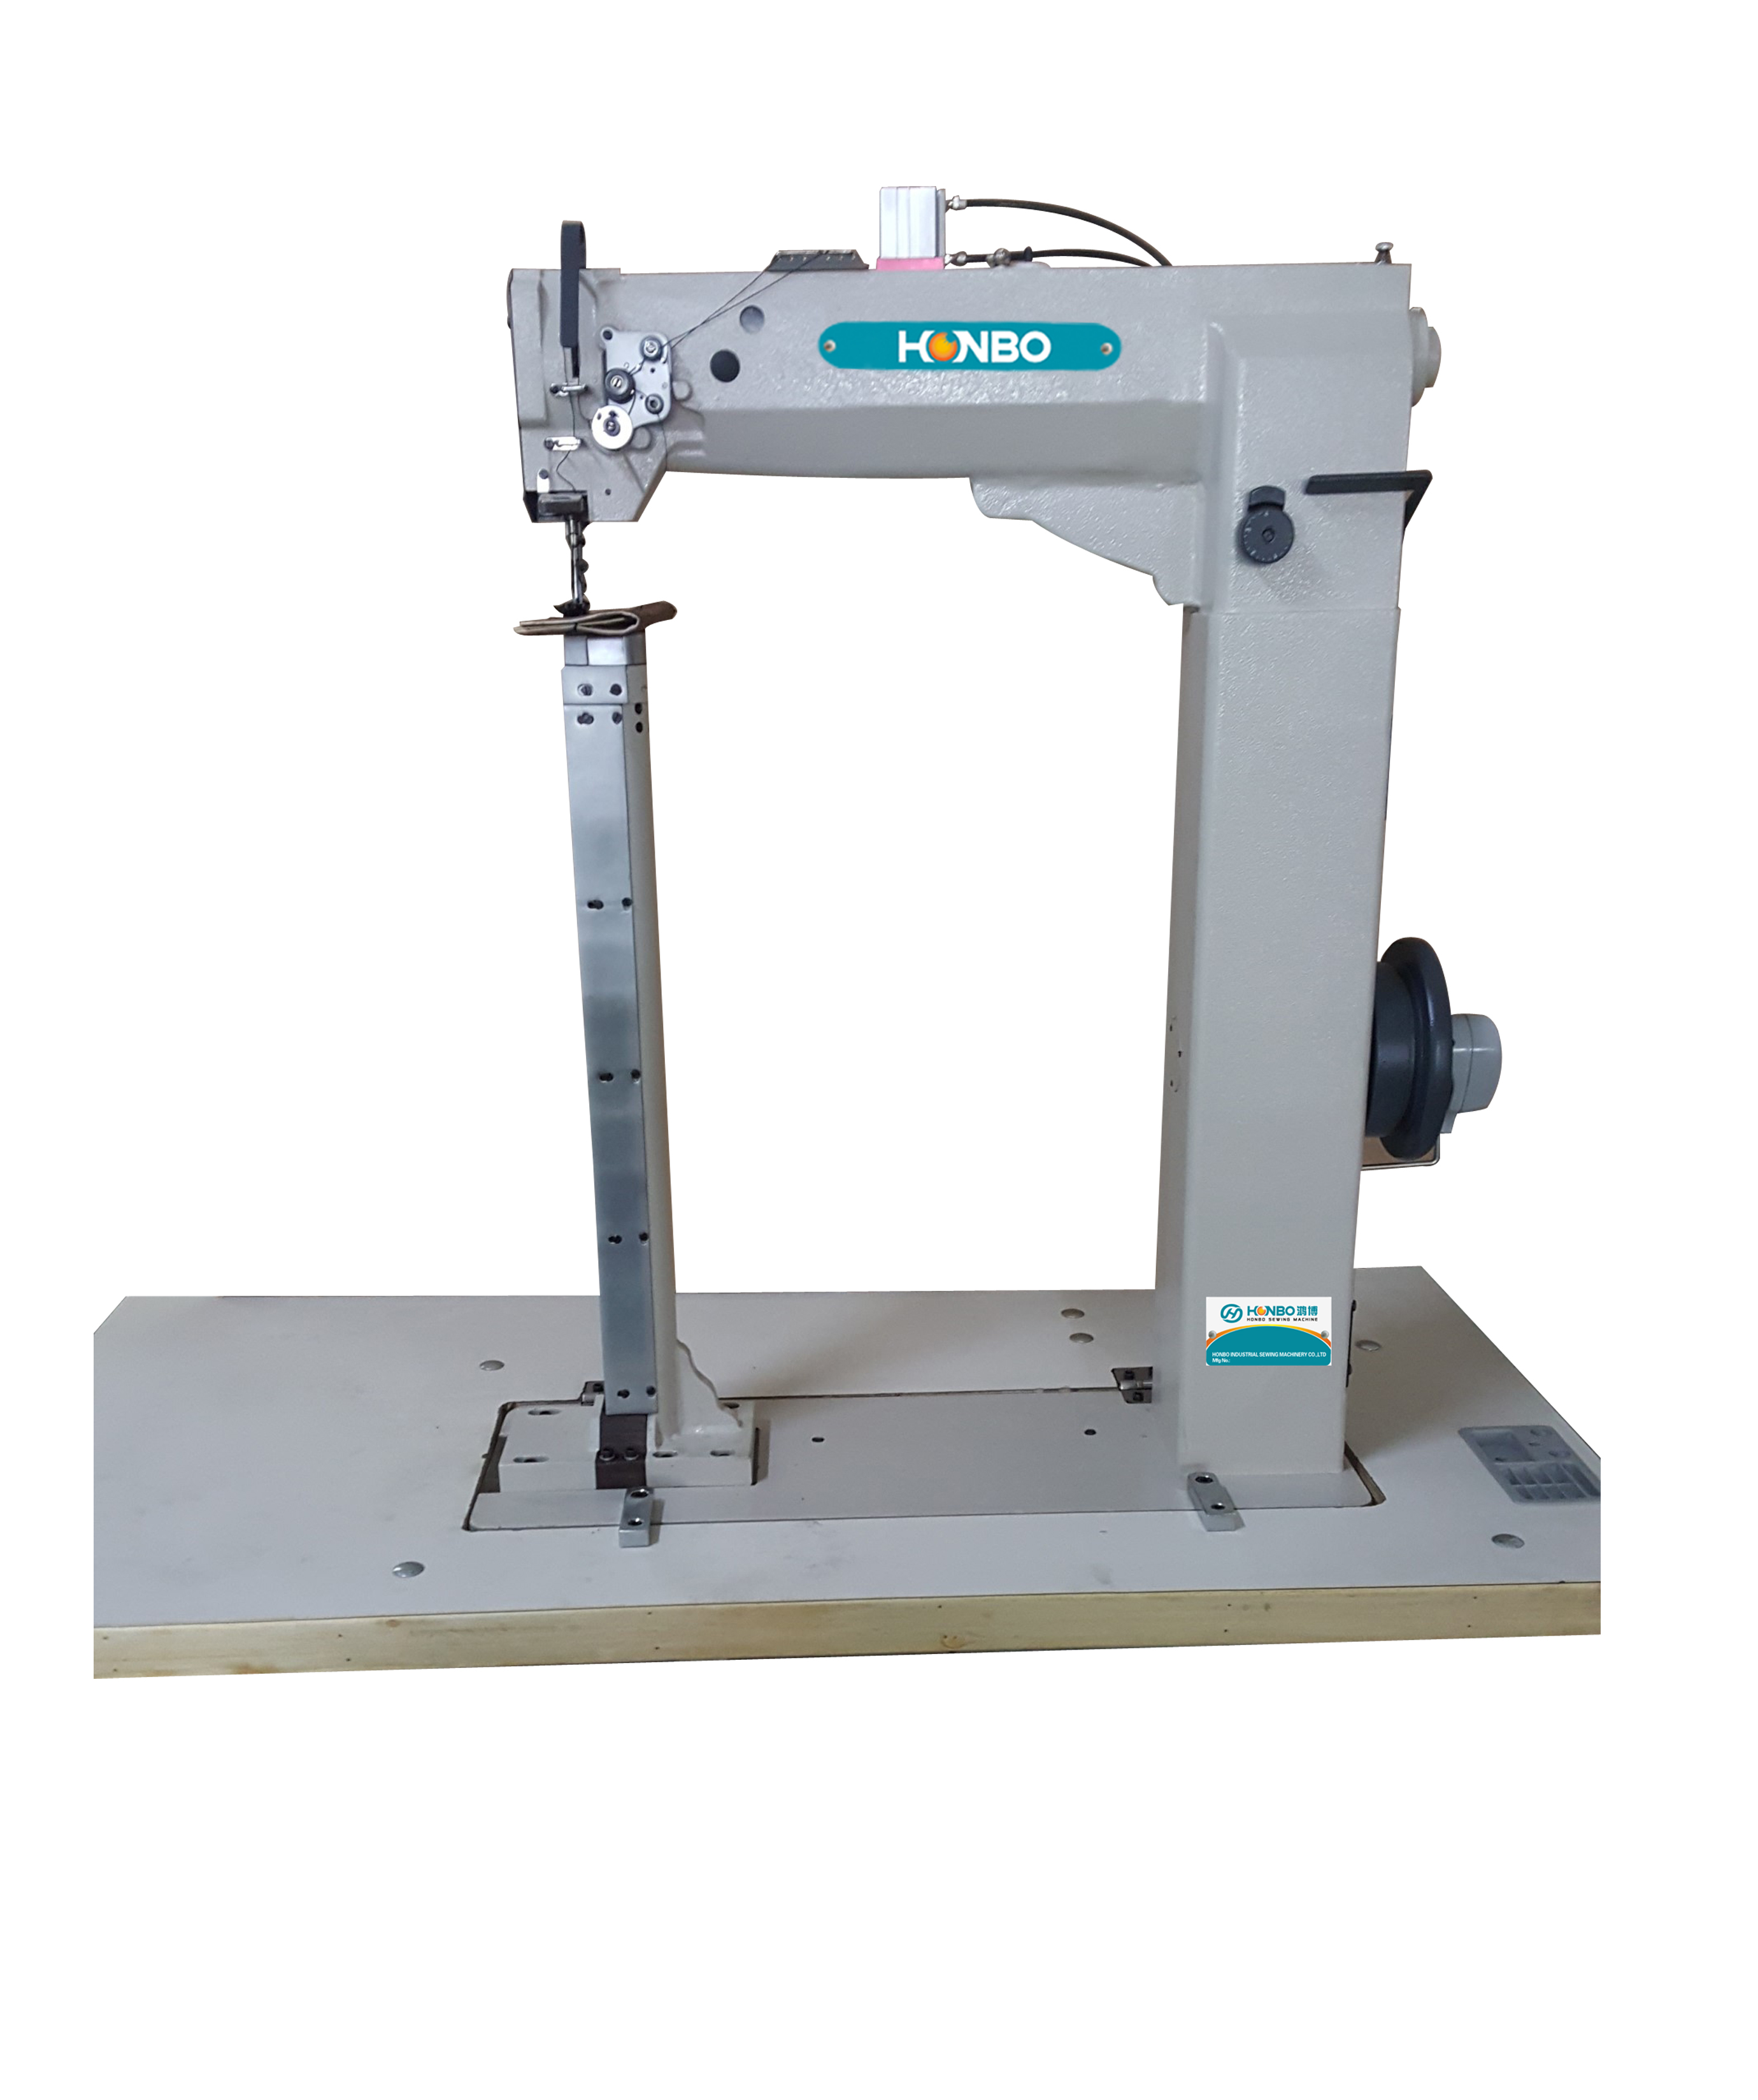 HB-8703F single needle unison feed industries prices post bed plastic luggage making leather shoe insole sewing machine